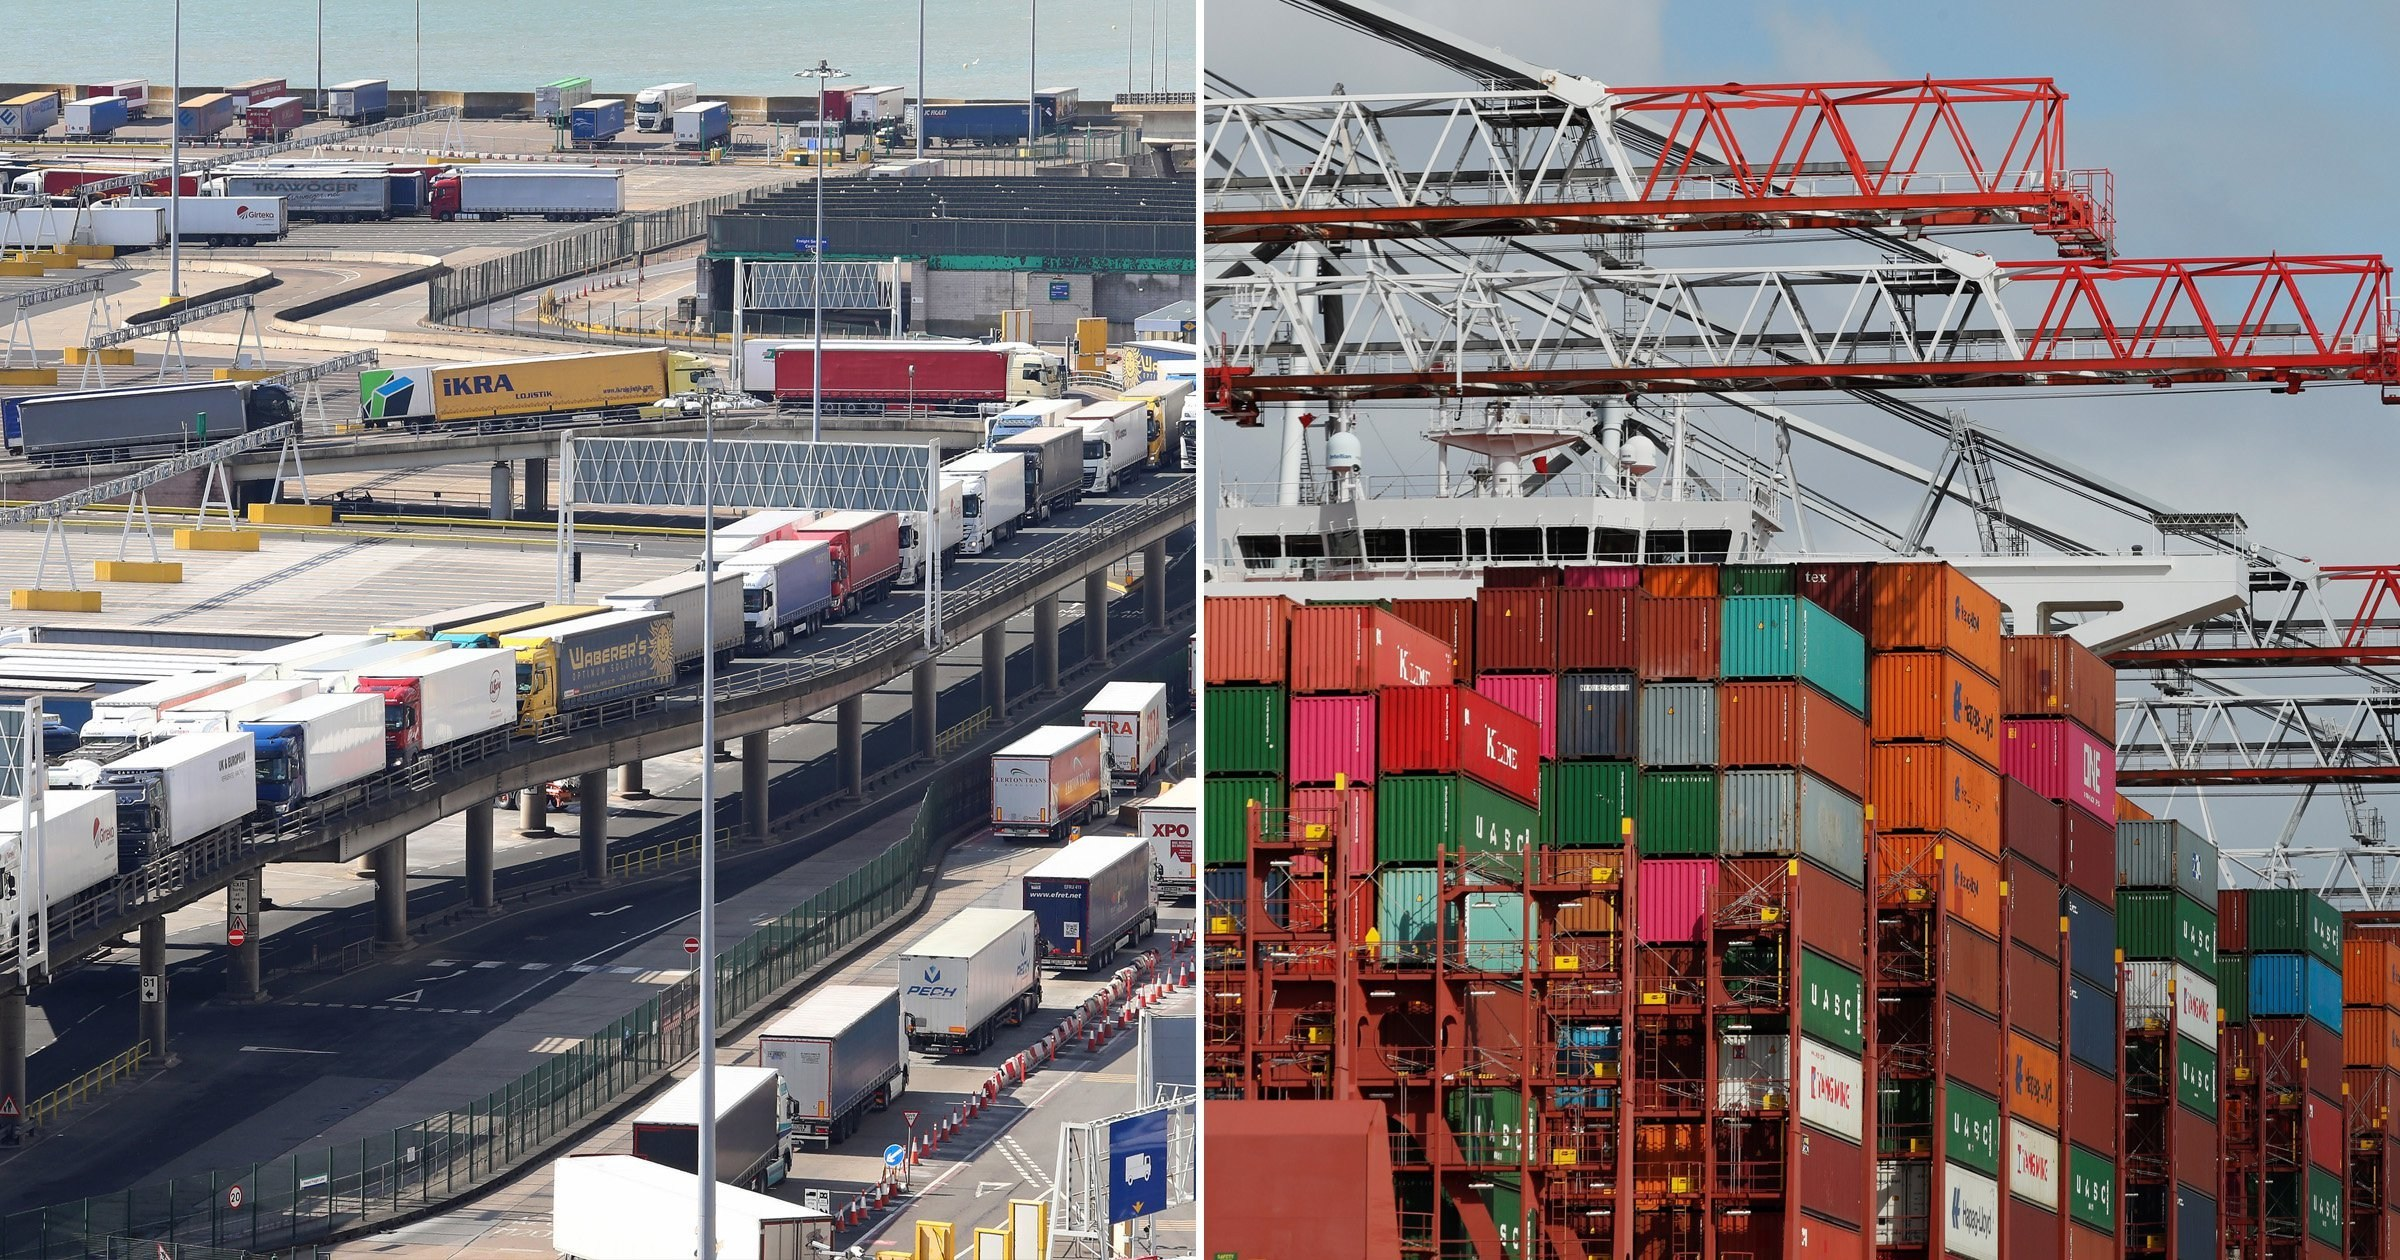 Deal struck with EU countries to keep vital supplies flowing into UK